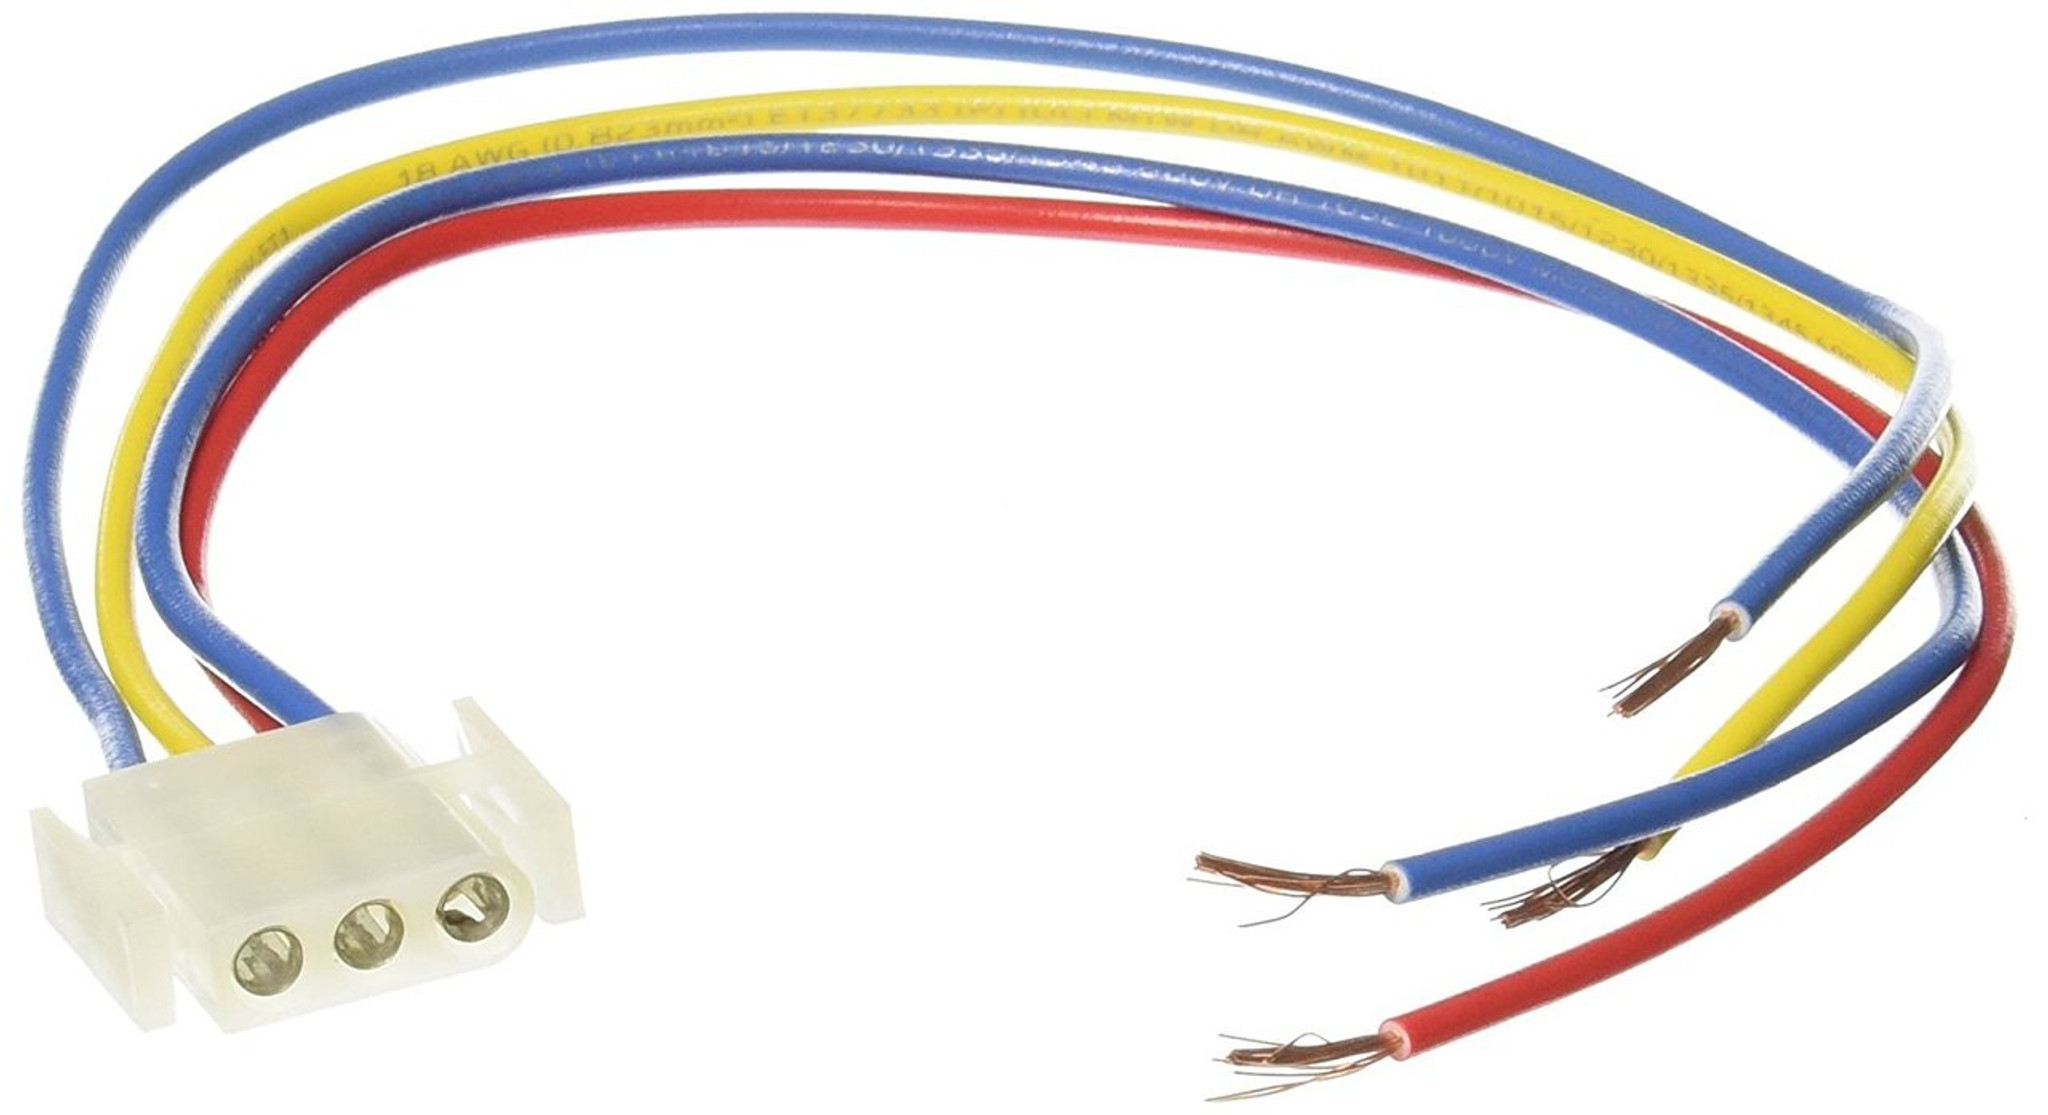 small resolution of suburban furnace power supply wire harness 520322 3 pin female suburban rv furnace wiring harness